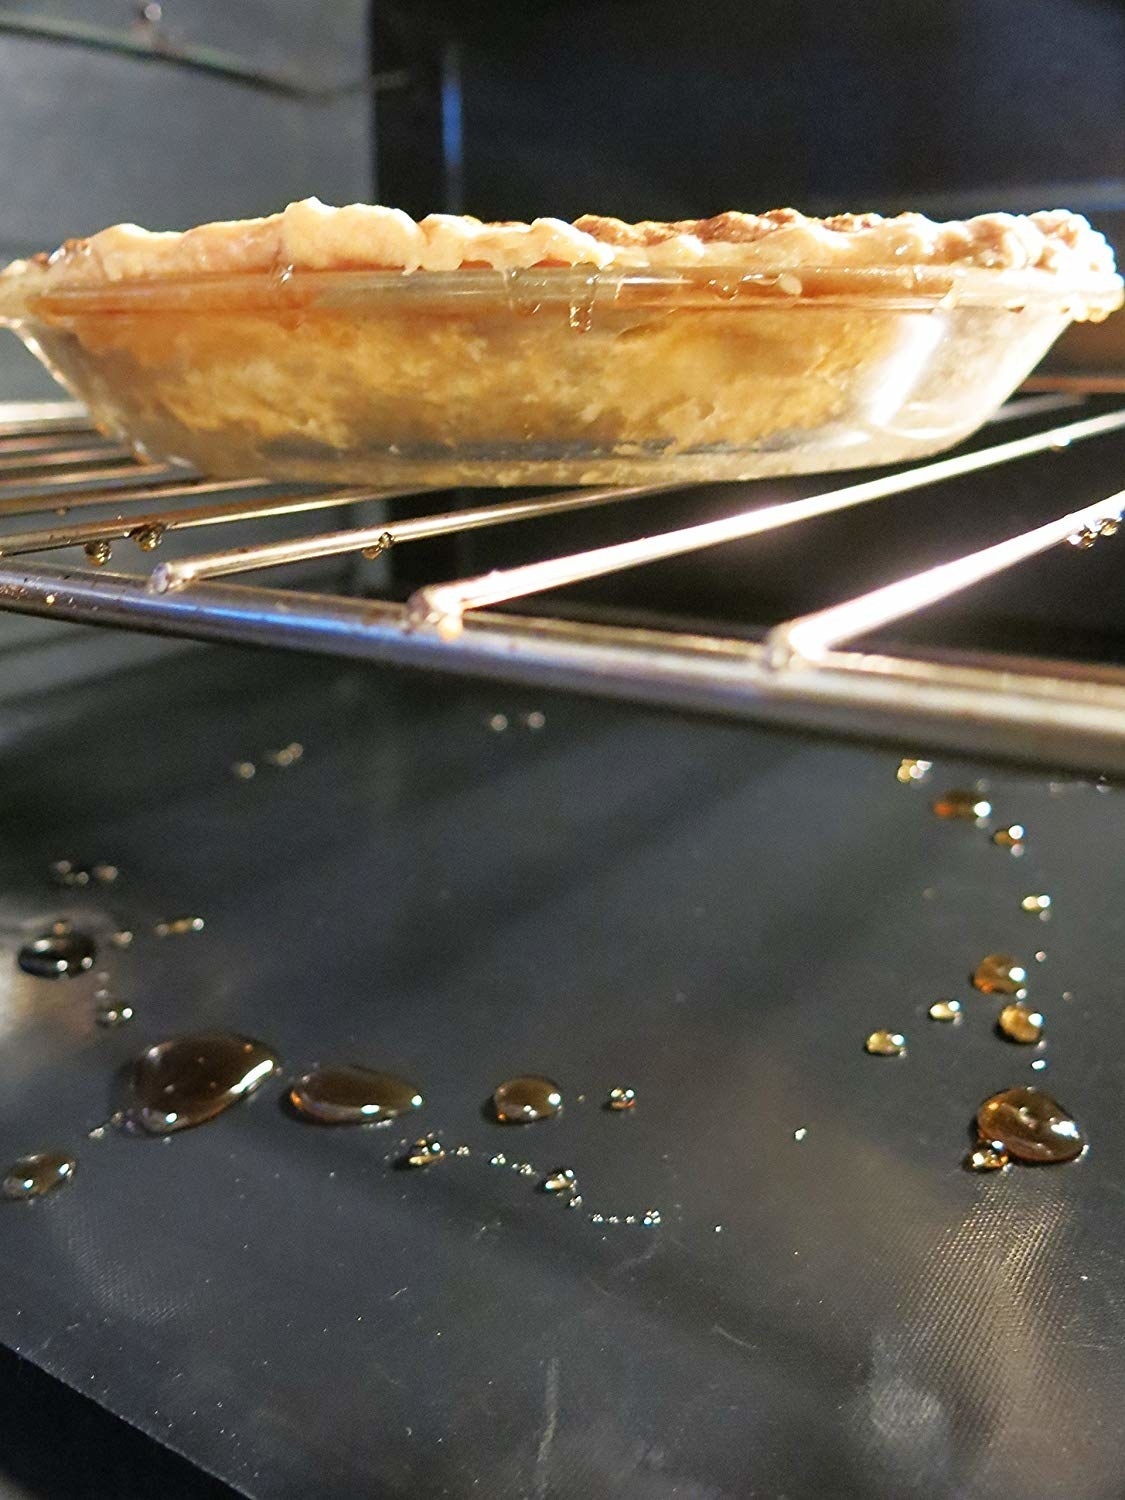 Pie dripping onto oven liners